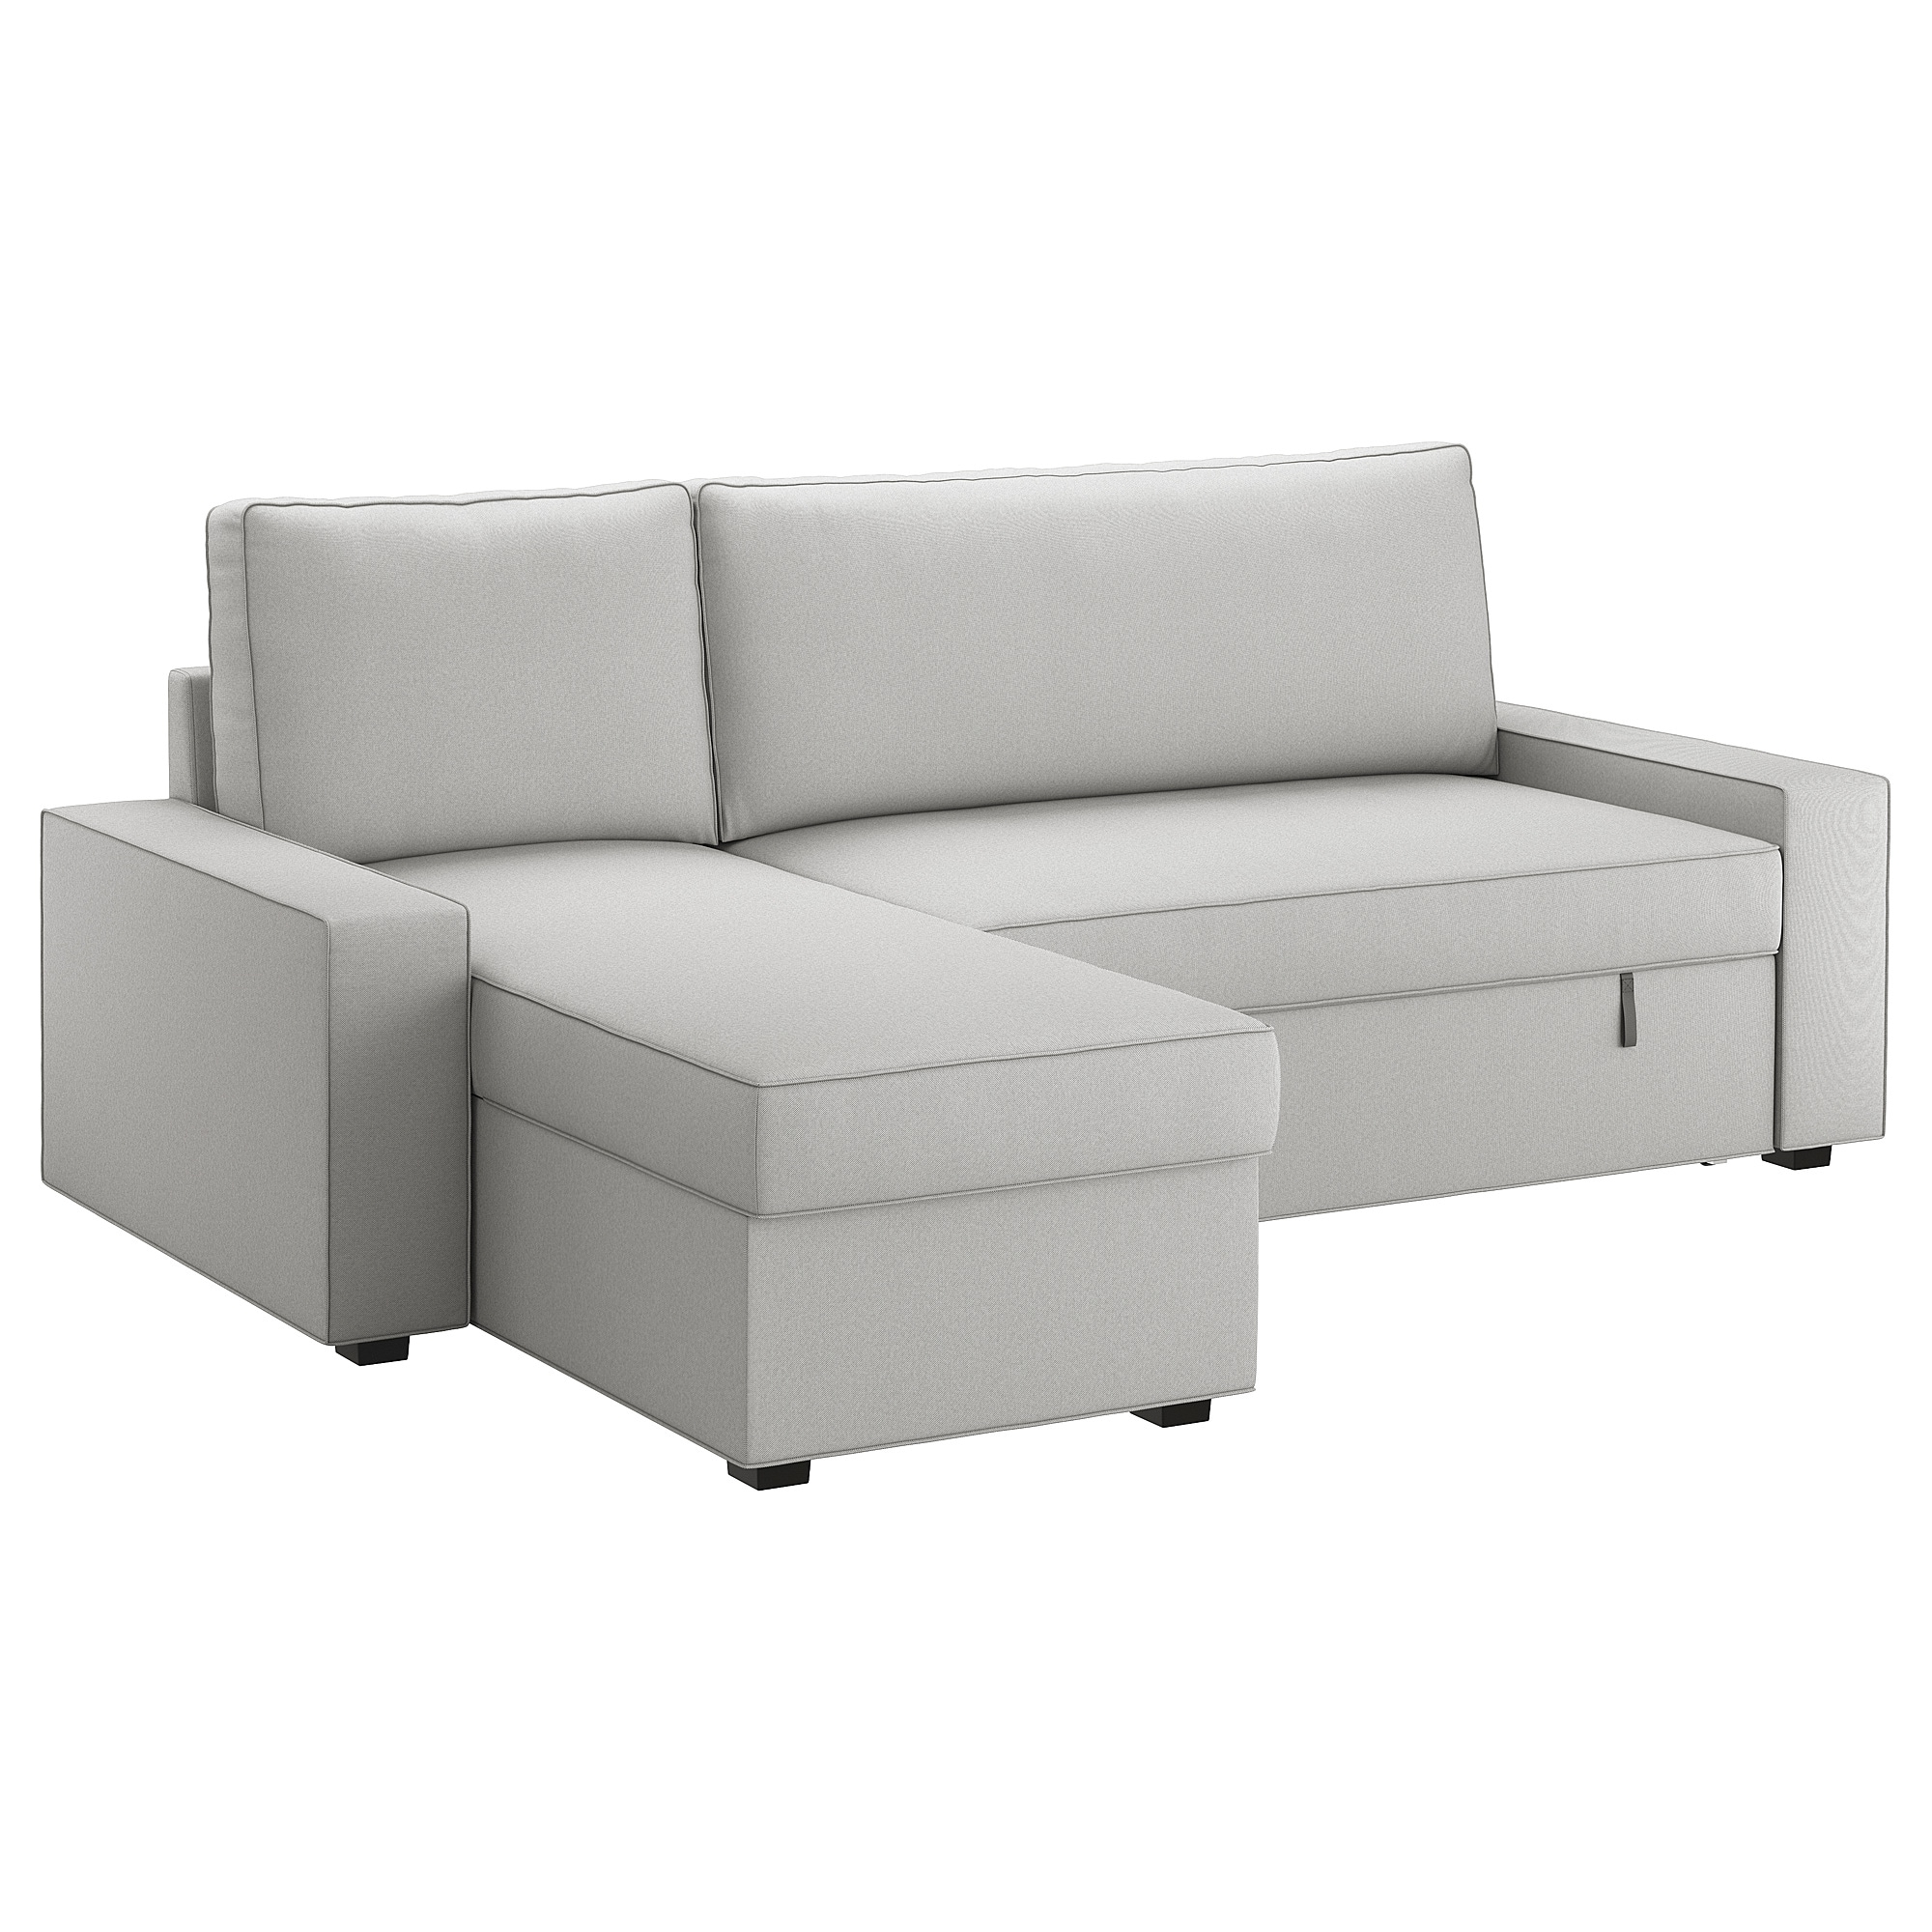 Ikea sofa Cama Chaise Longue X8d1 Vilasund sofa Bed with Chaise Longue orrsta Light Grey Ikea